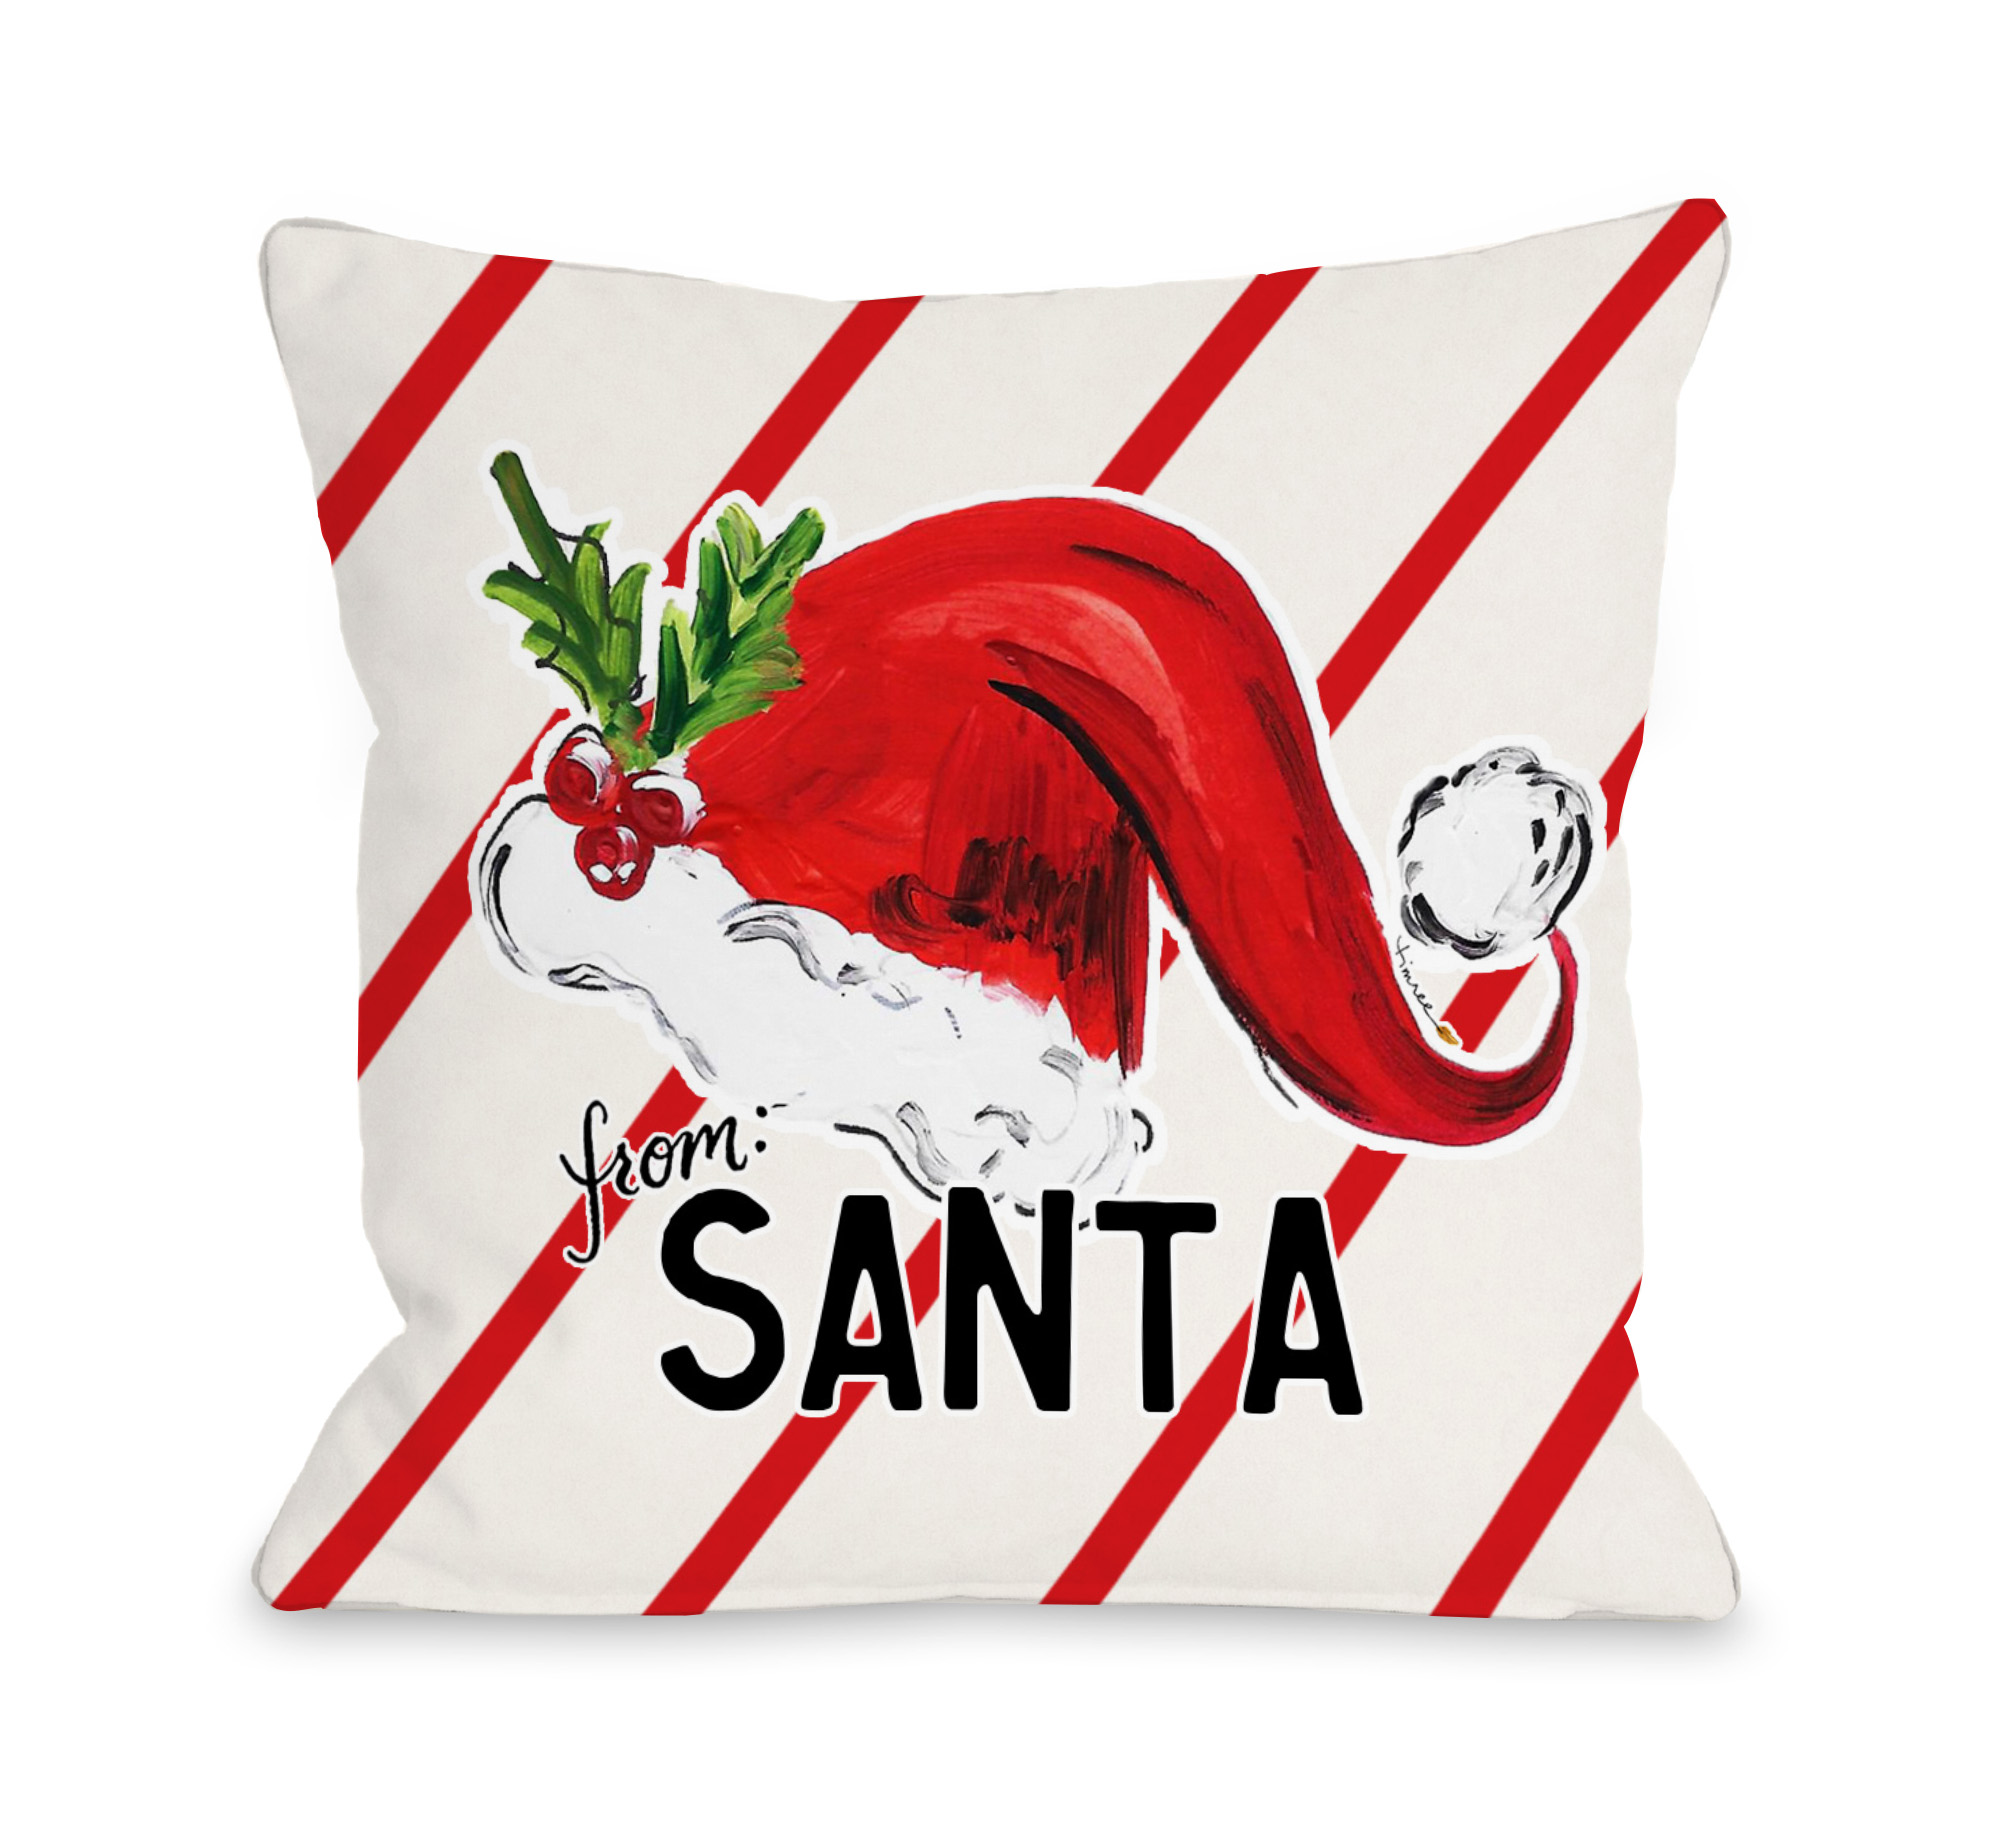 From Santa Hat - Cream Red 18x18 Pillow by Timree